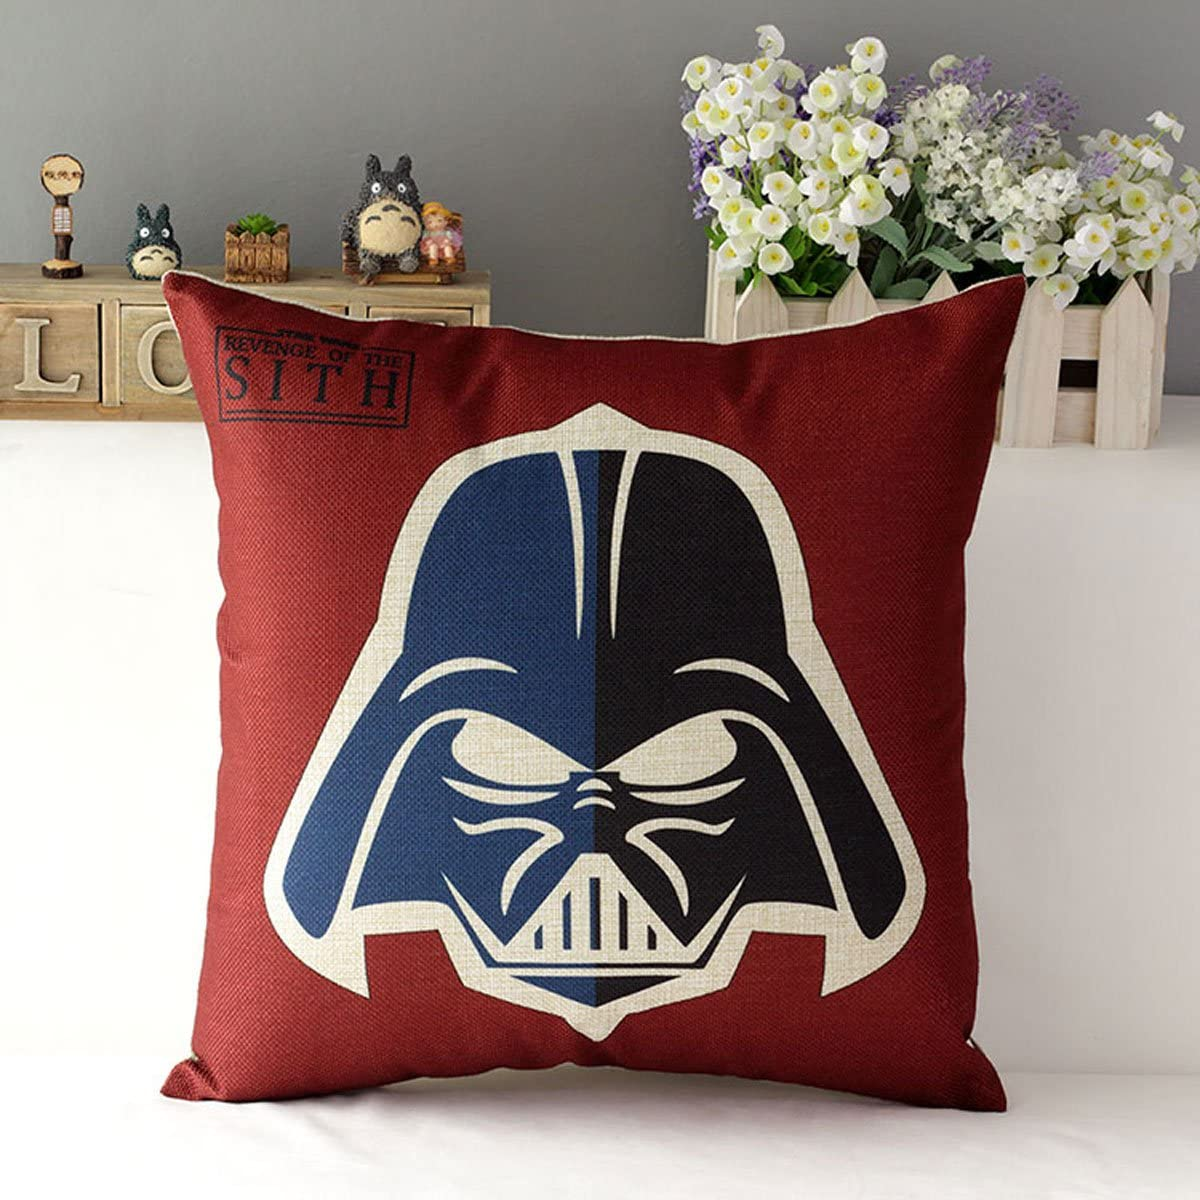 "TavasDecor 17"" Star Wars Home Sofa Chair Couch Decorative Throw Pillow Case Cushion Cover - Darth Vader, Anakin Skywalker"